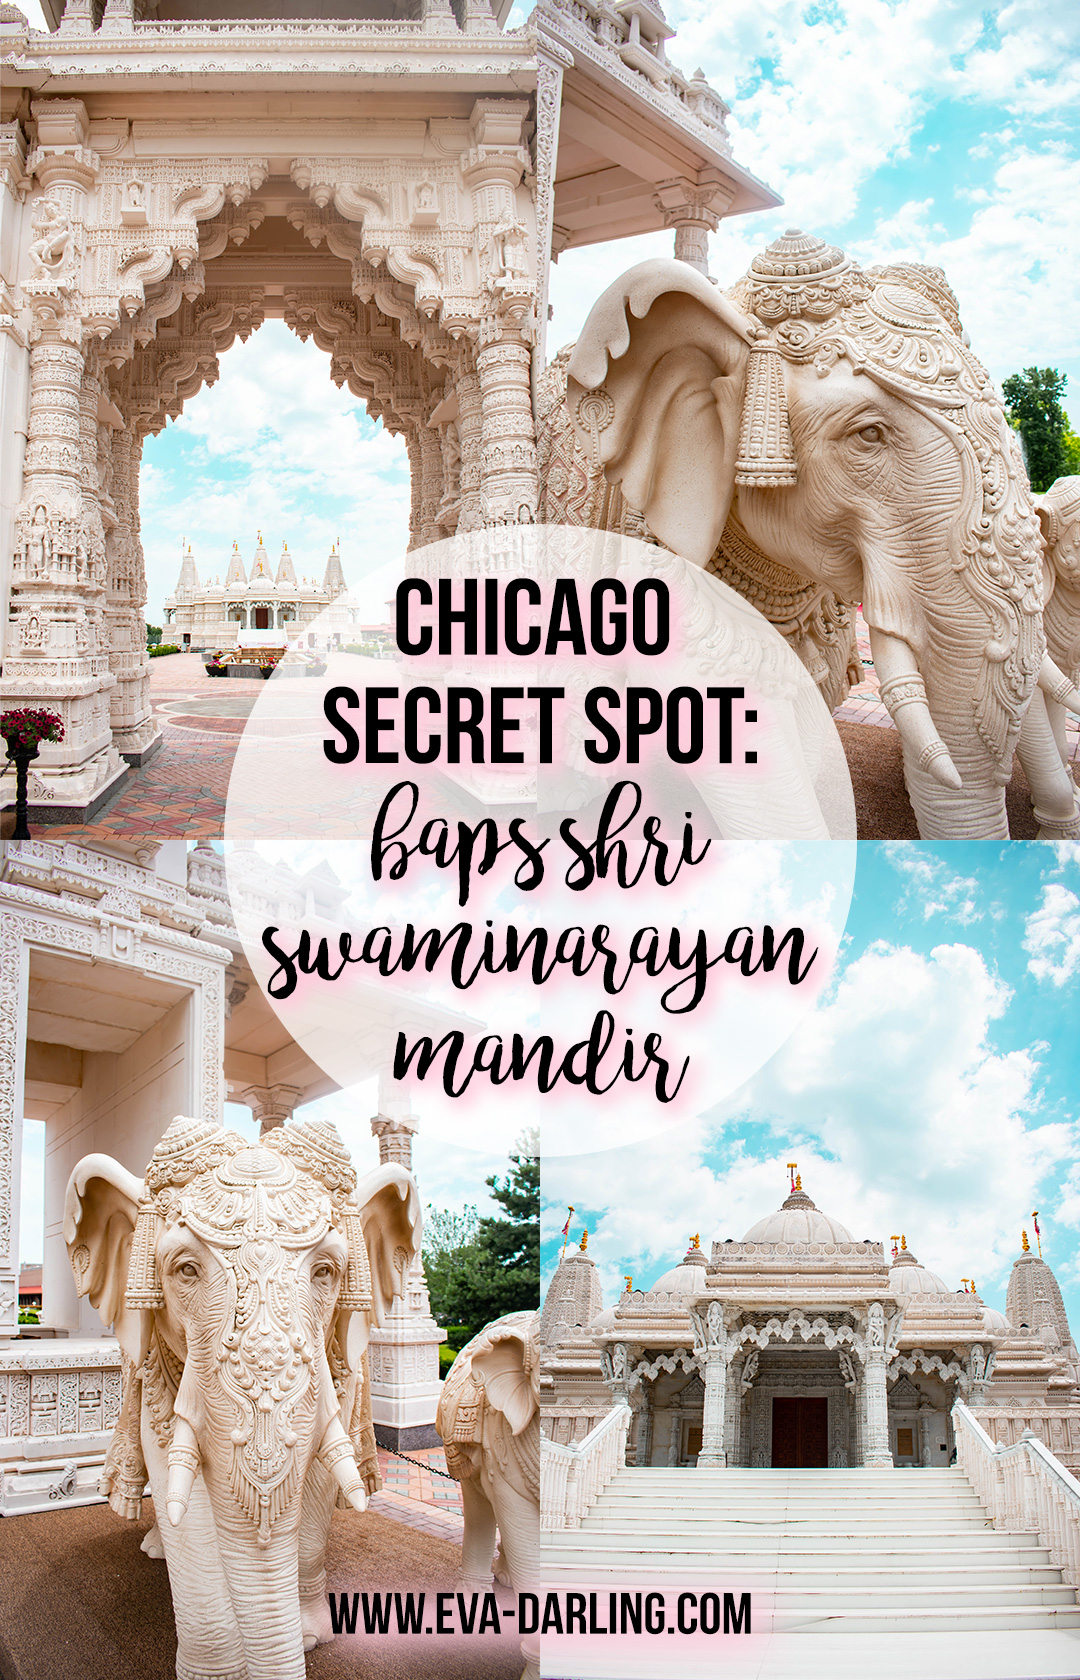 travel blogger eva phan of eva darling baps shri swaminarayan mandir hidden gem chicago illinois things to do in bartlett secret spot chicago unique things to do in chitown chi midwest travel ideas travel guide chicago indian architecture hindu hindi temple